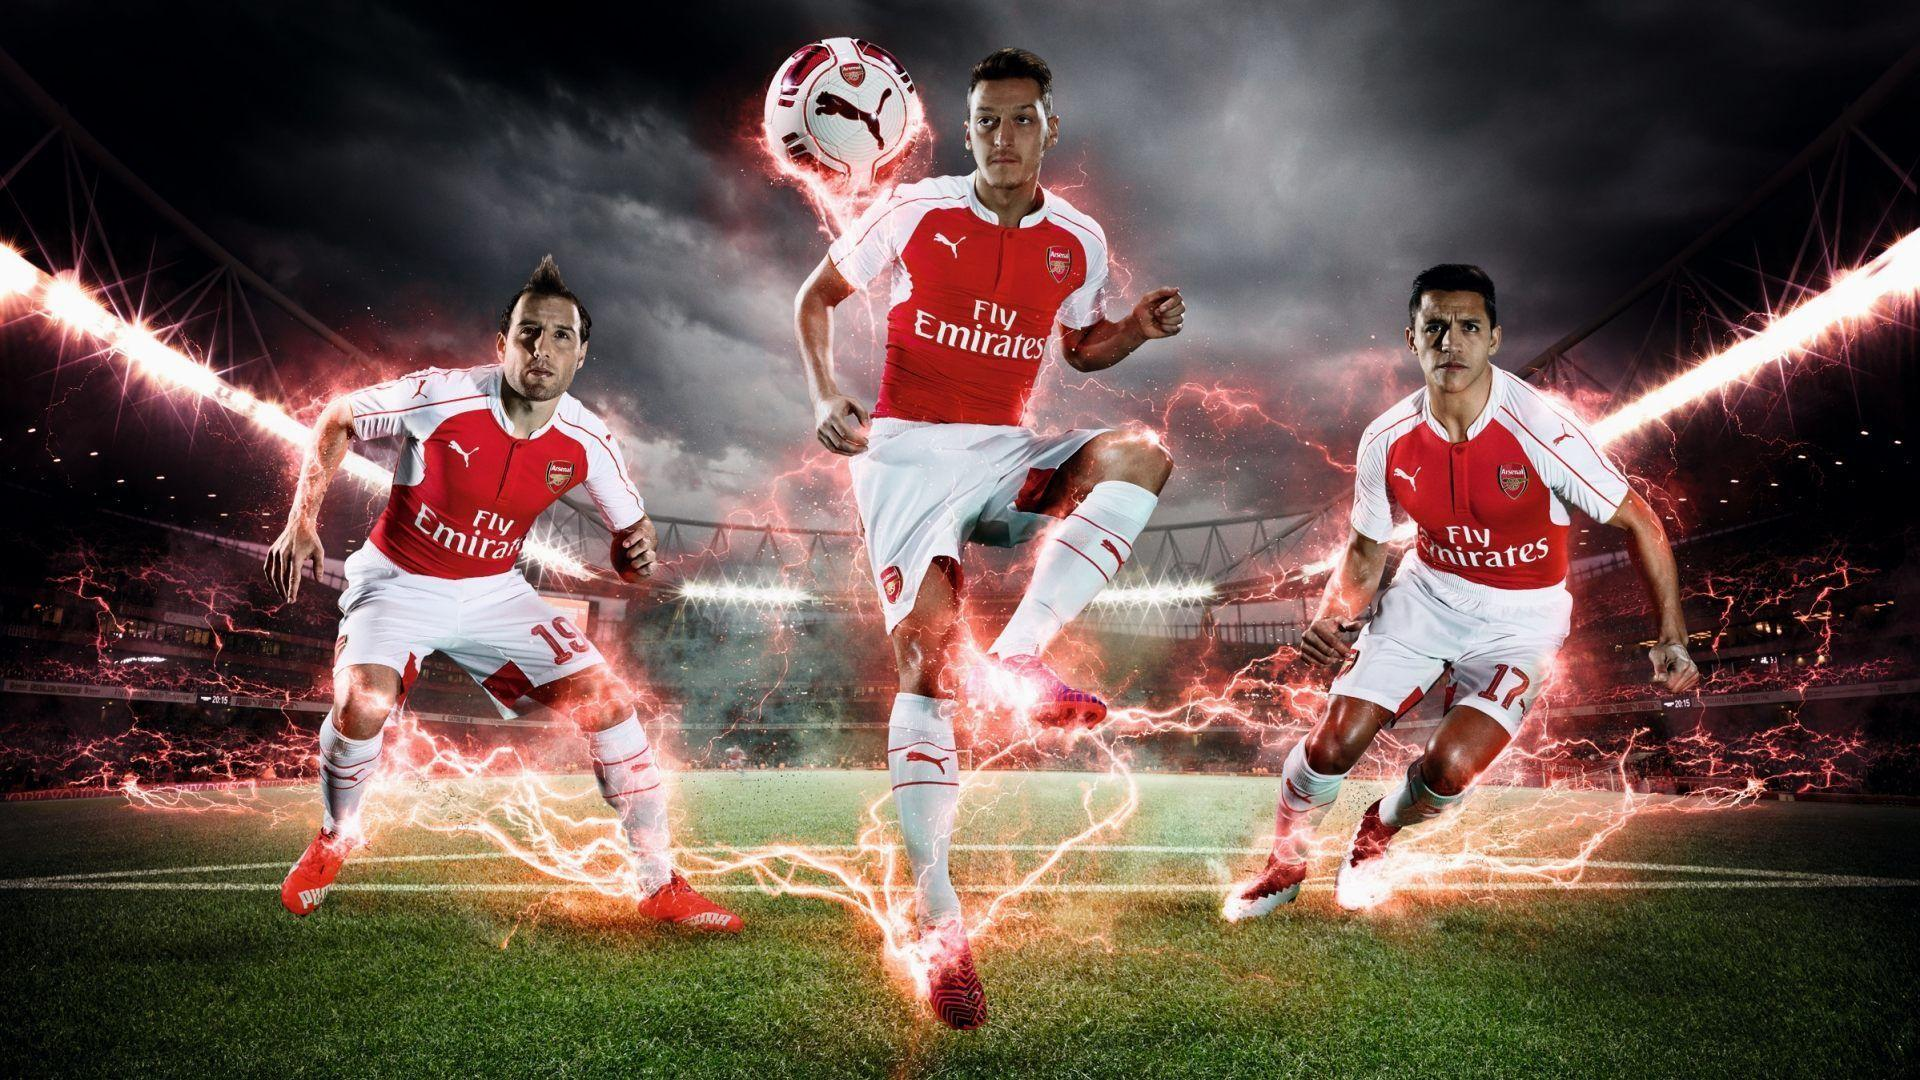 Arsenal logo wallpapers 2016 wallpaper cave for Terengganu home wallpaper 2016